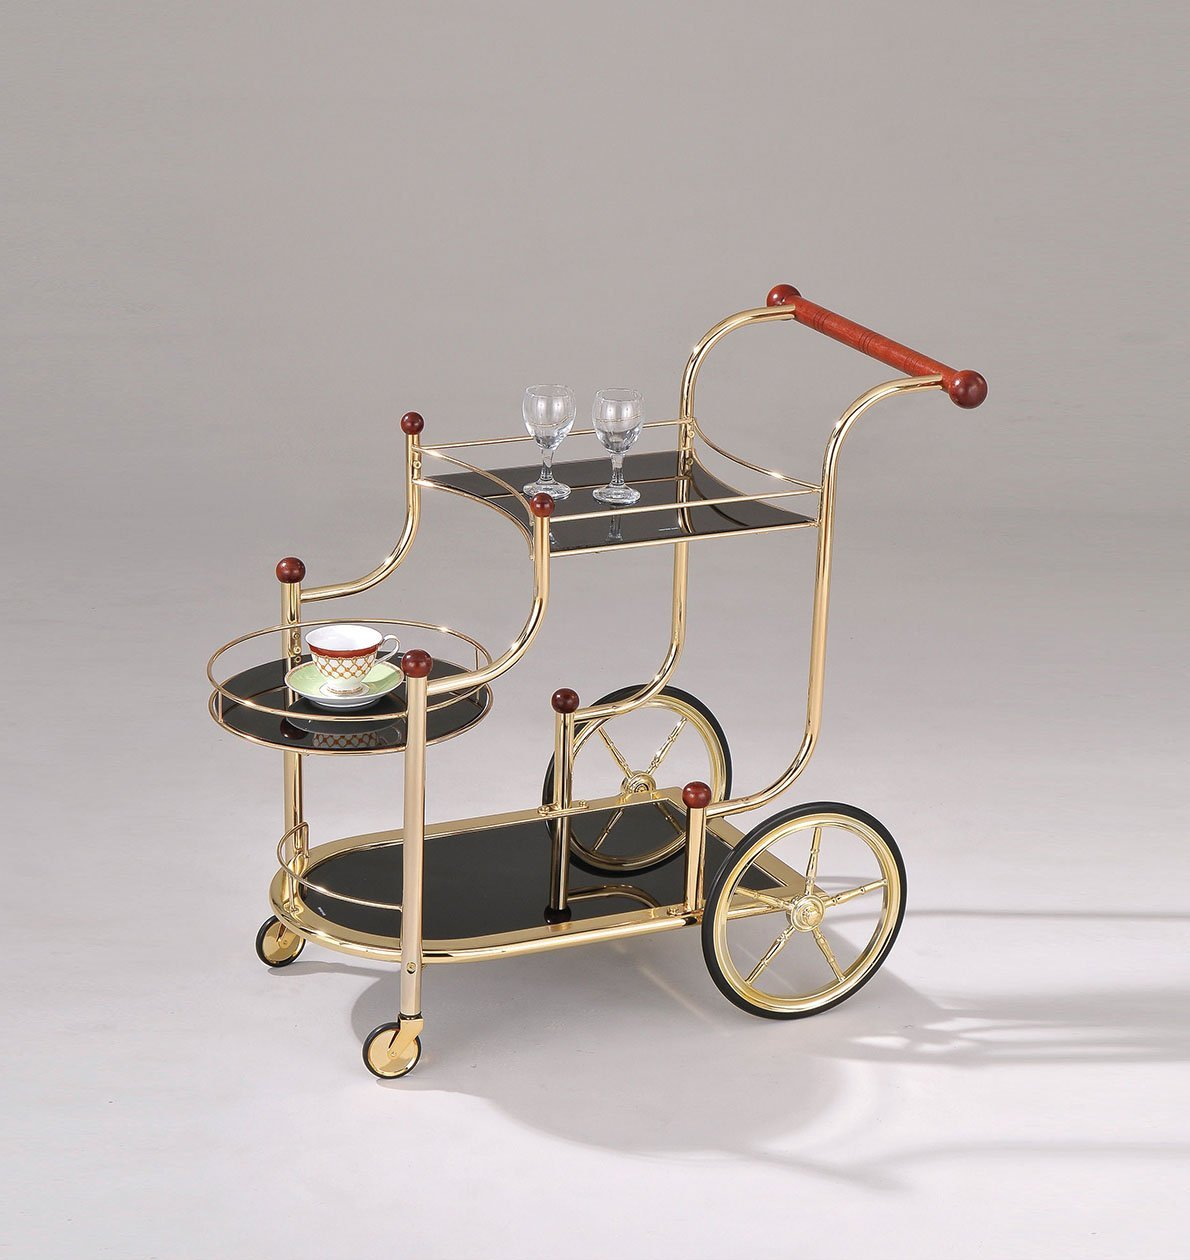 Benches & Carts Serving Cart, Golden Plated & Black Glass - Metal, Glass, Rubber Wood Golden Plated & Black Glass 689211811782 HR286124